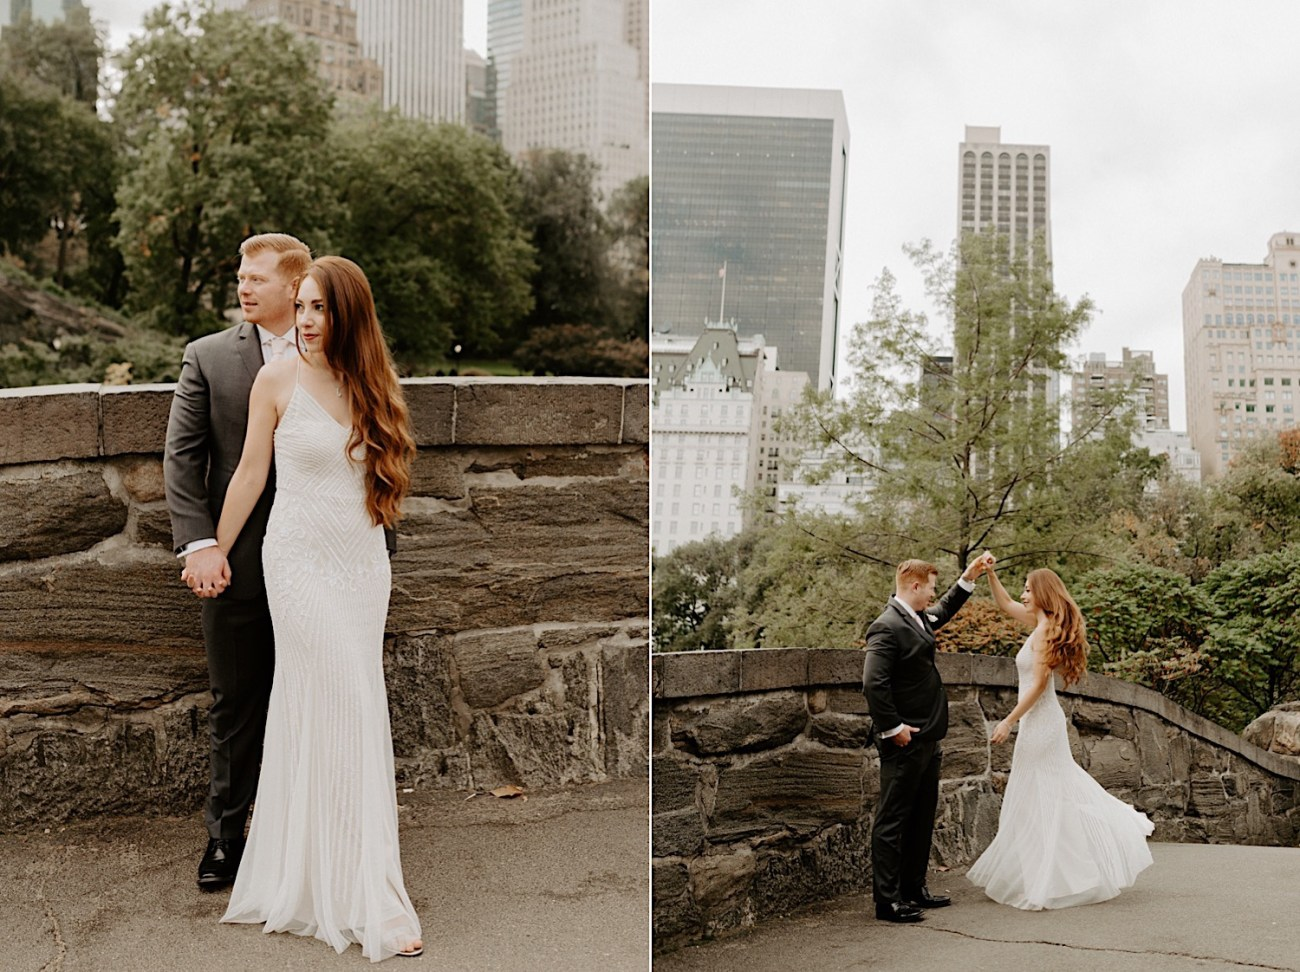 Central Park Wedding Photos Central Park Elopement NYC Wedding Photographer 05